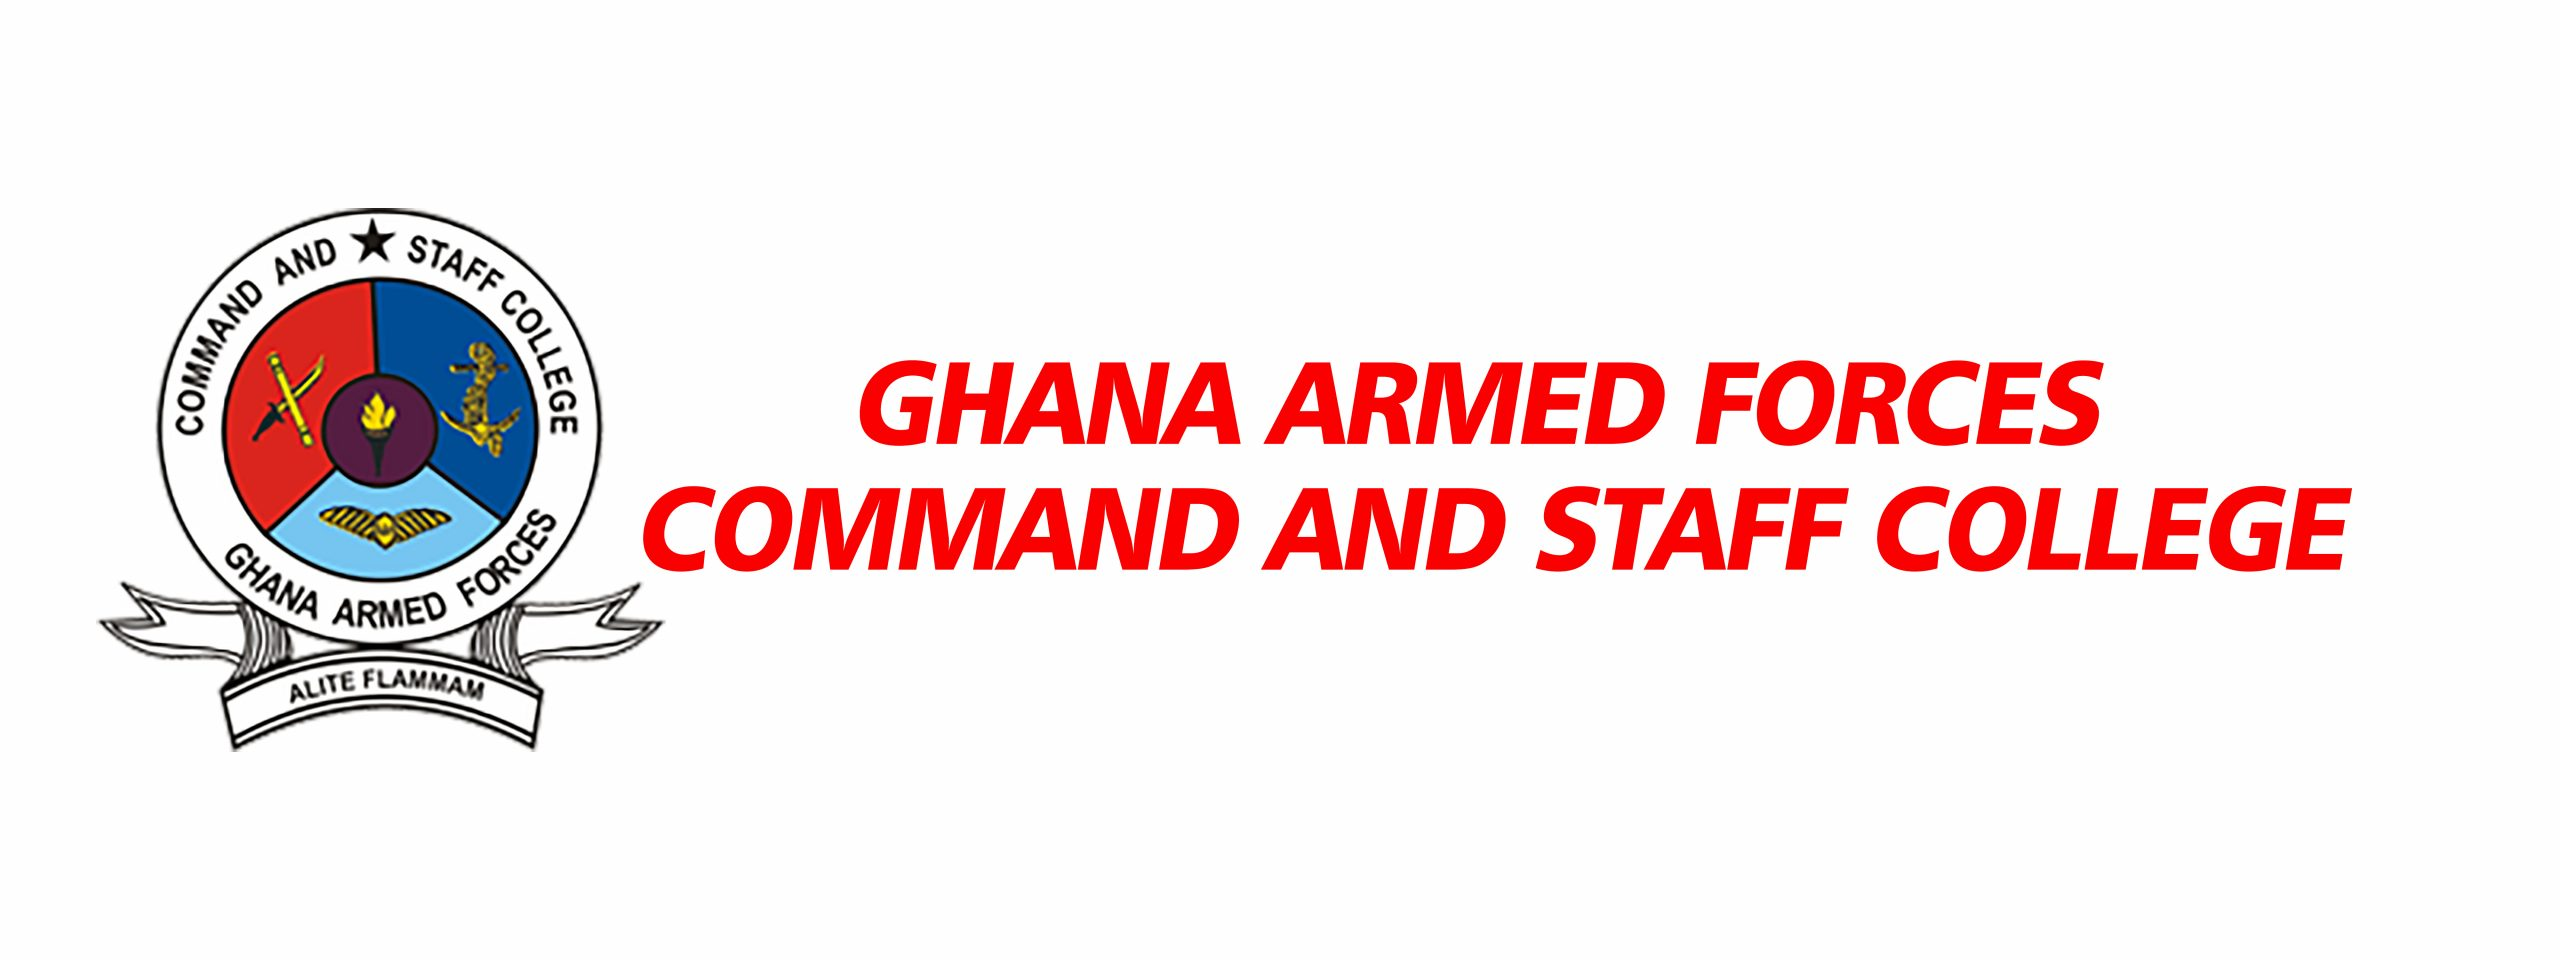 Ghana Armed Forces Command and Staff College